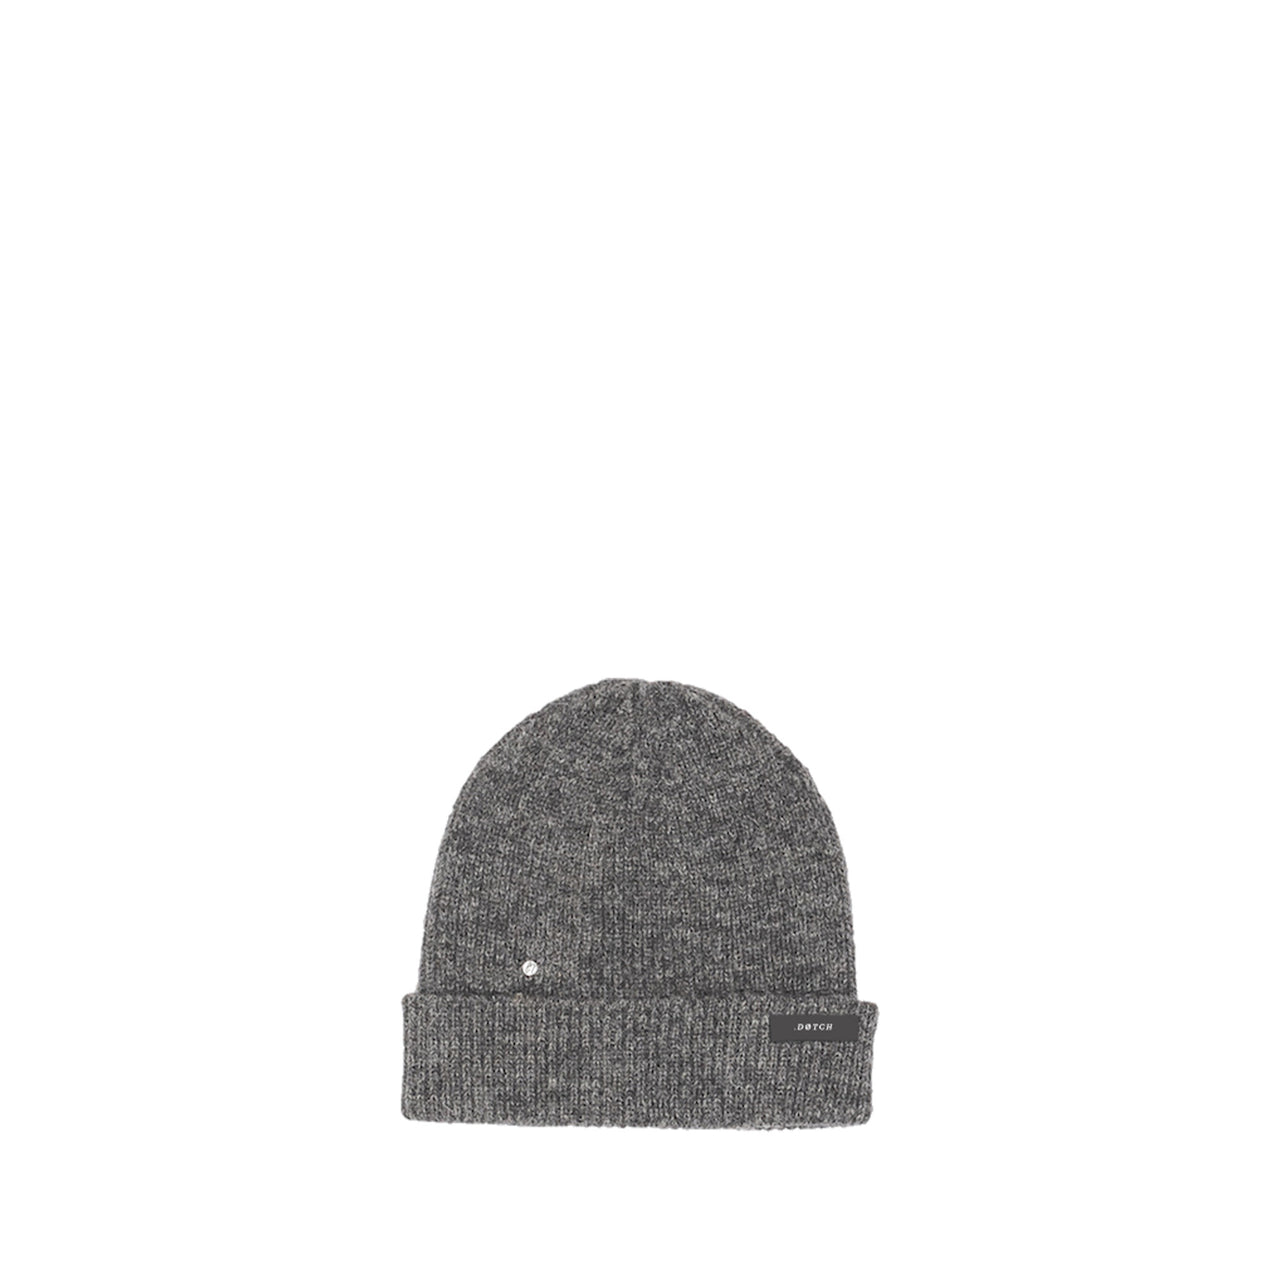 DØTCH x LN KNITS BEANIE: CHARCOAL